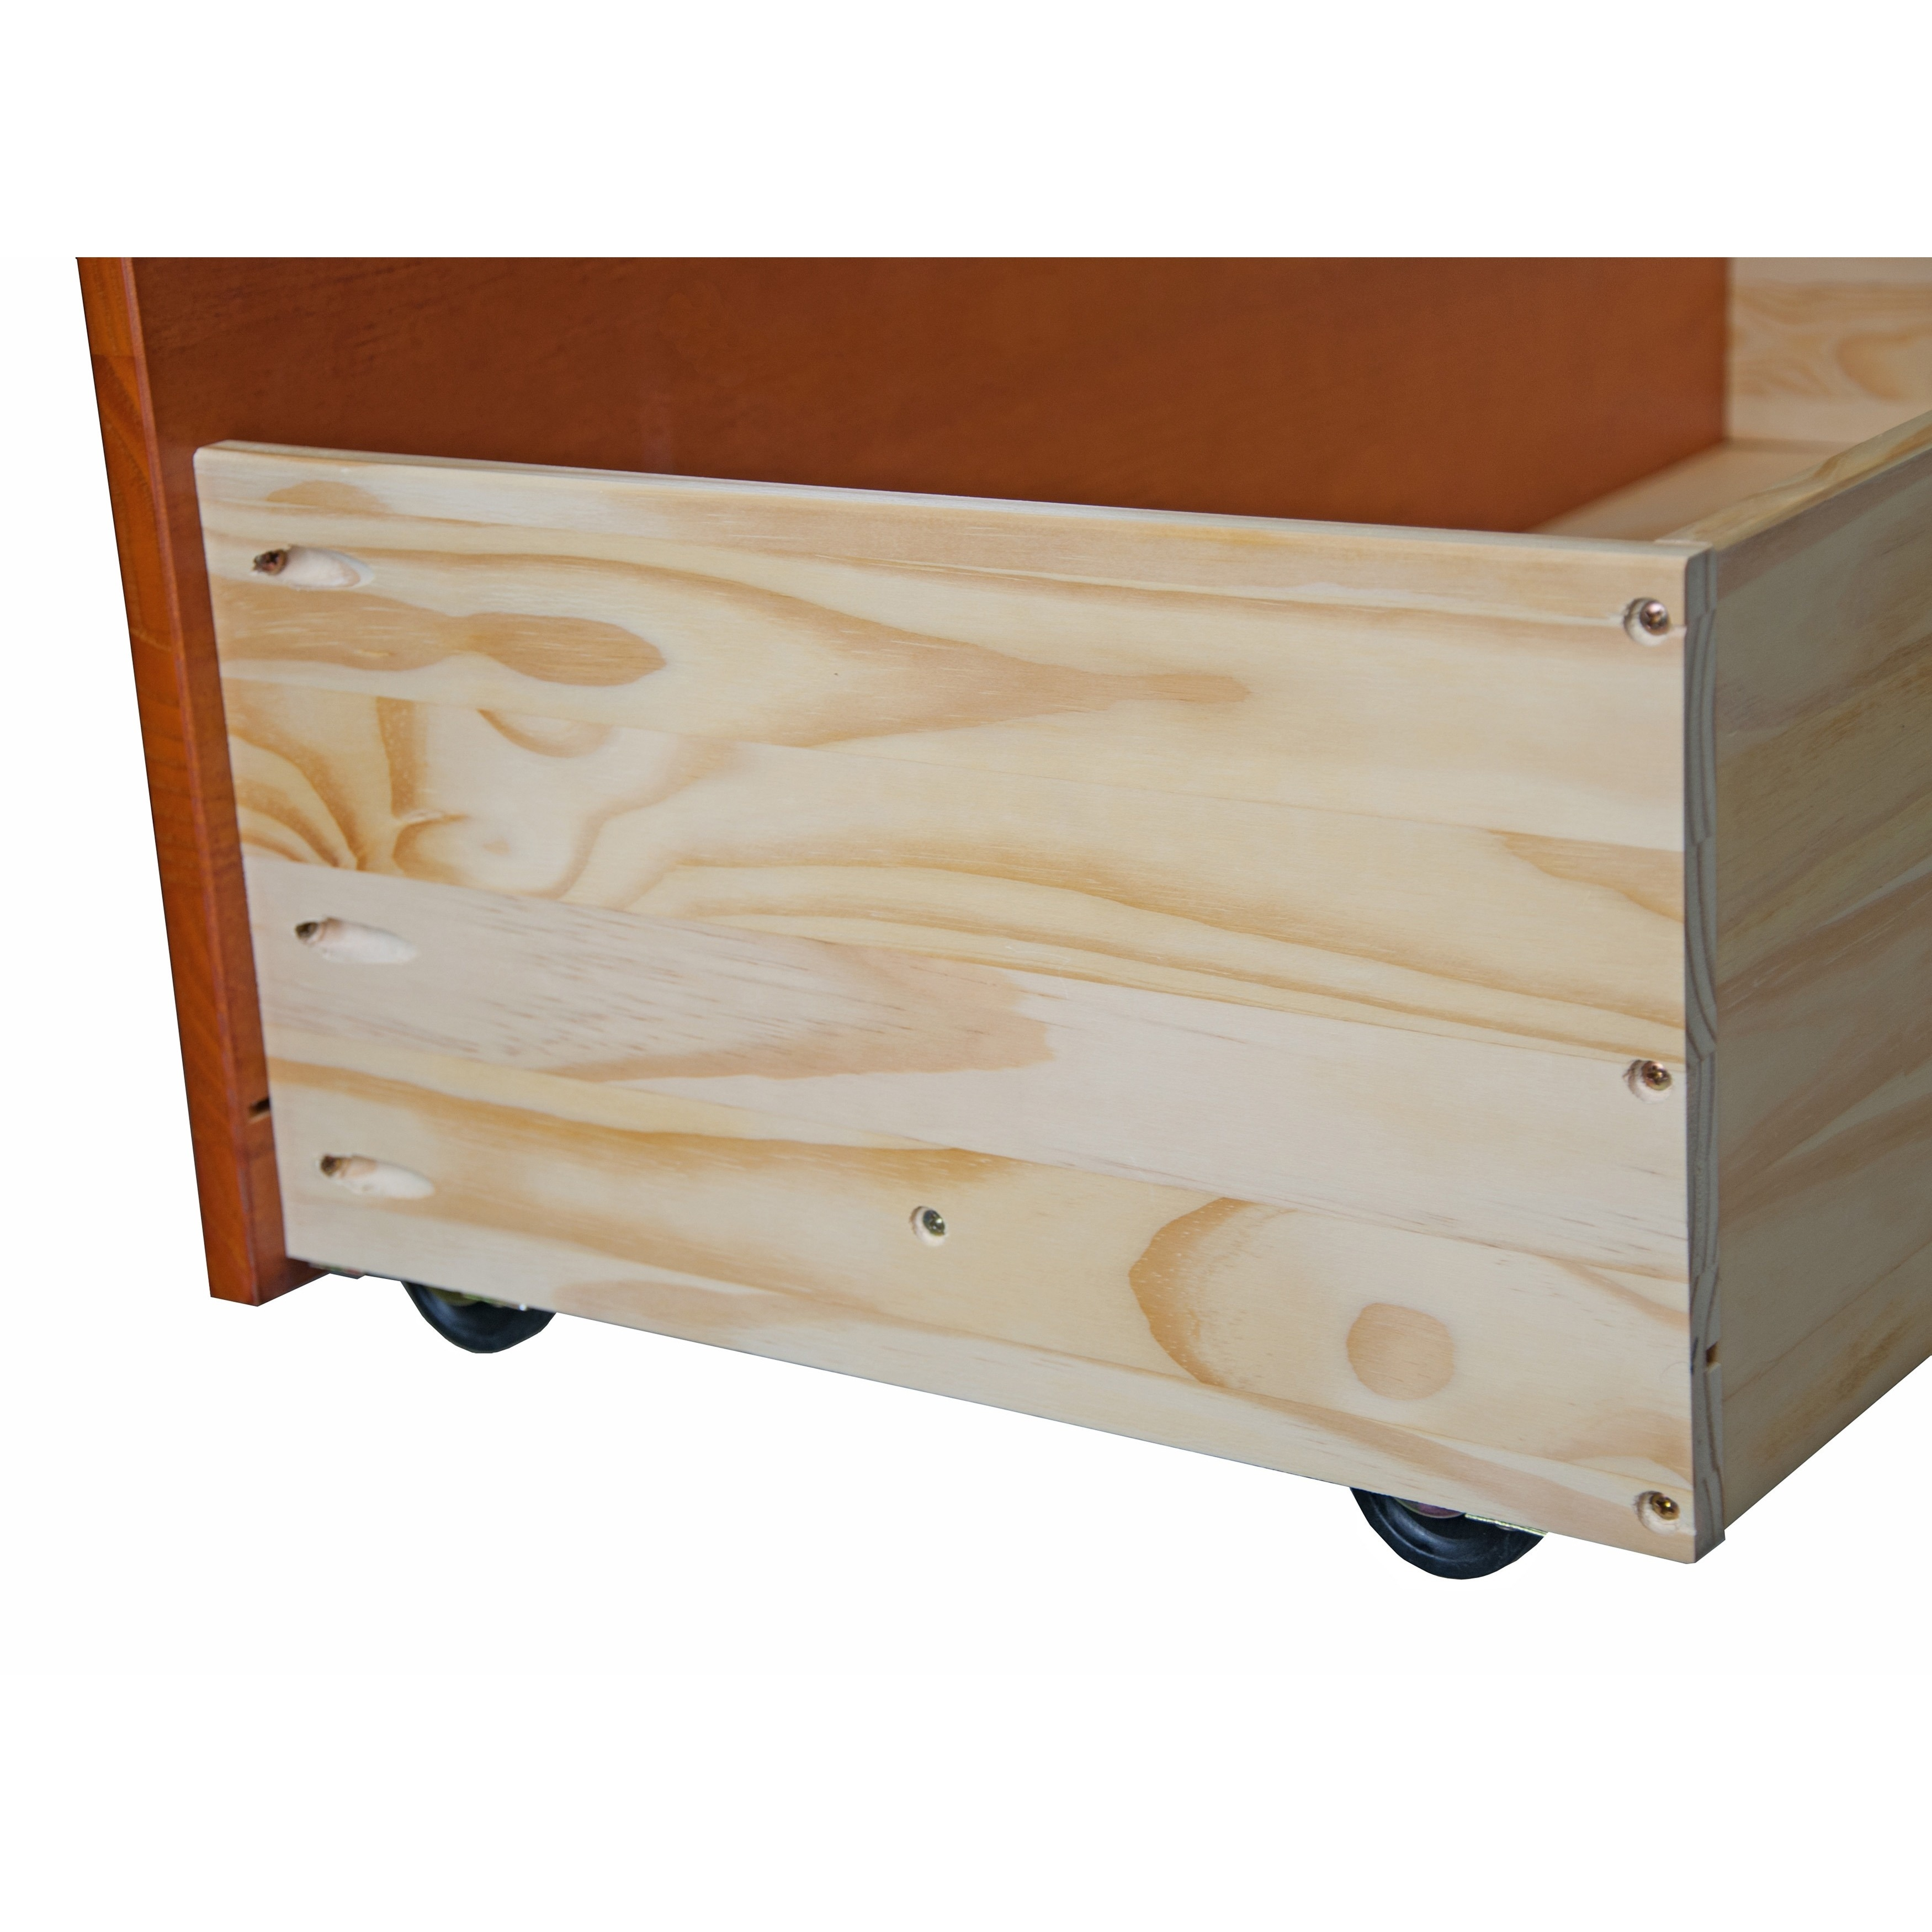 Shop Solid Wood Set Of 2 Underbed Drawers On Wheels   Free Shipping Today    Overstock.com   9497974